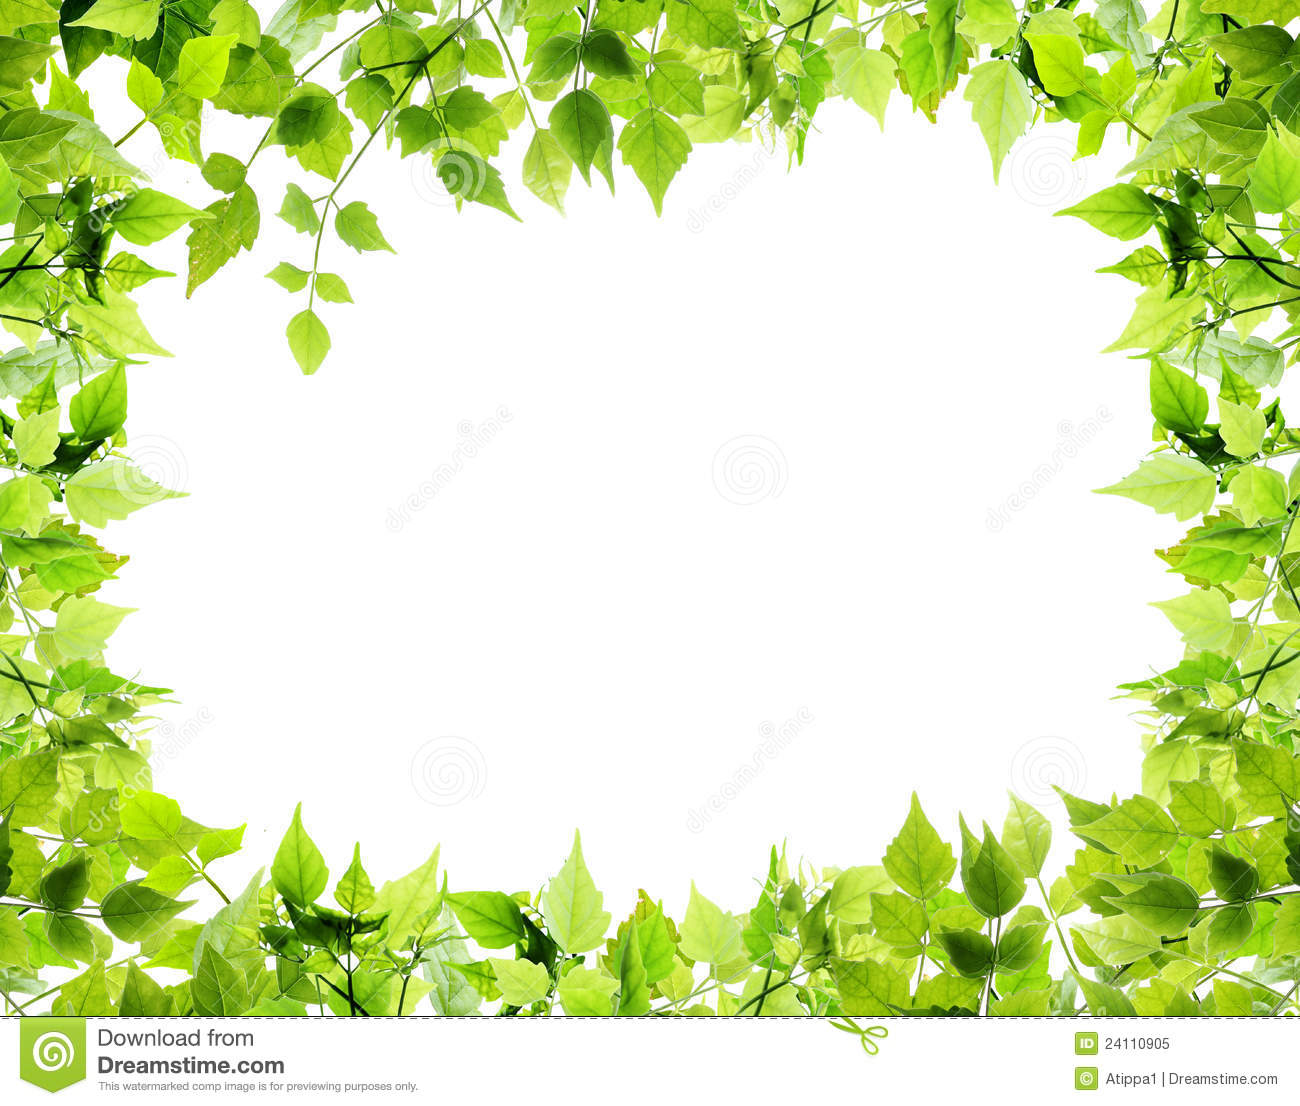 Nature frame clipart.